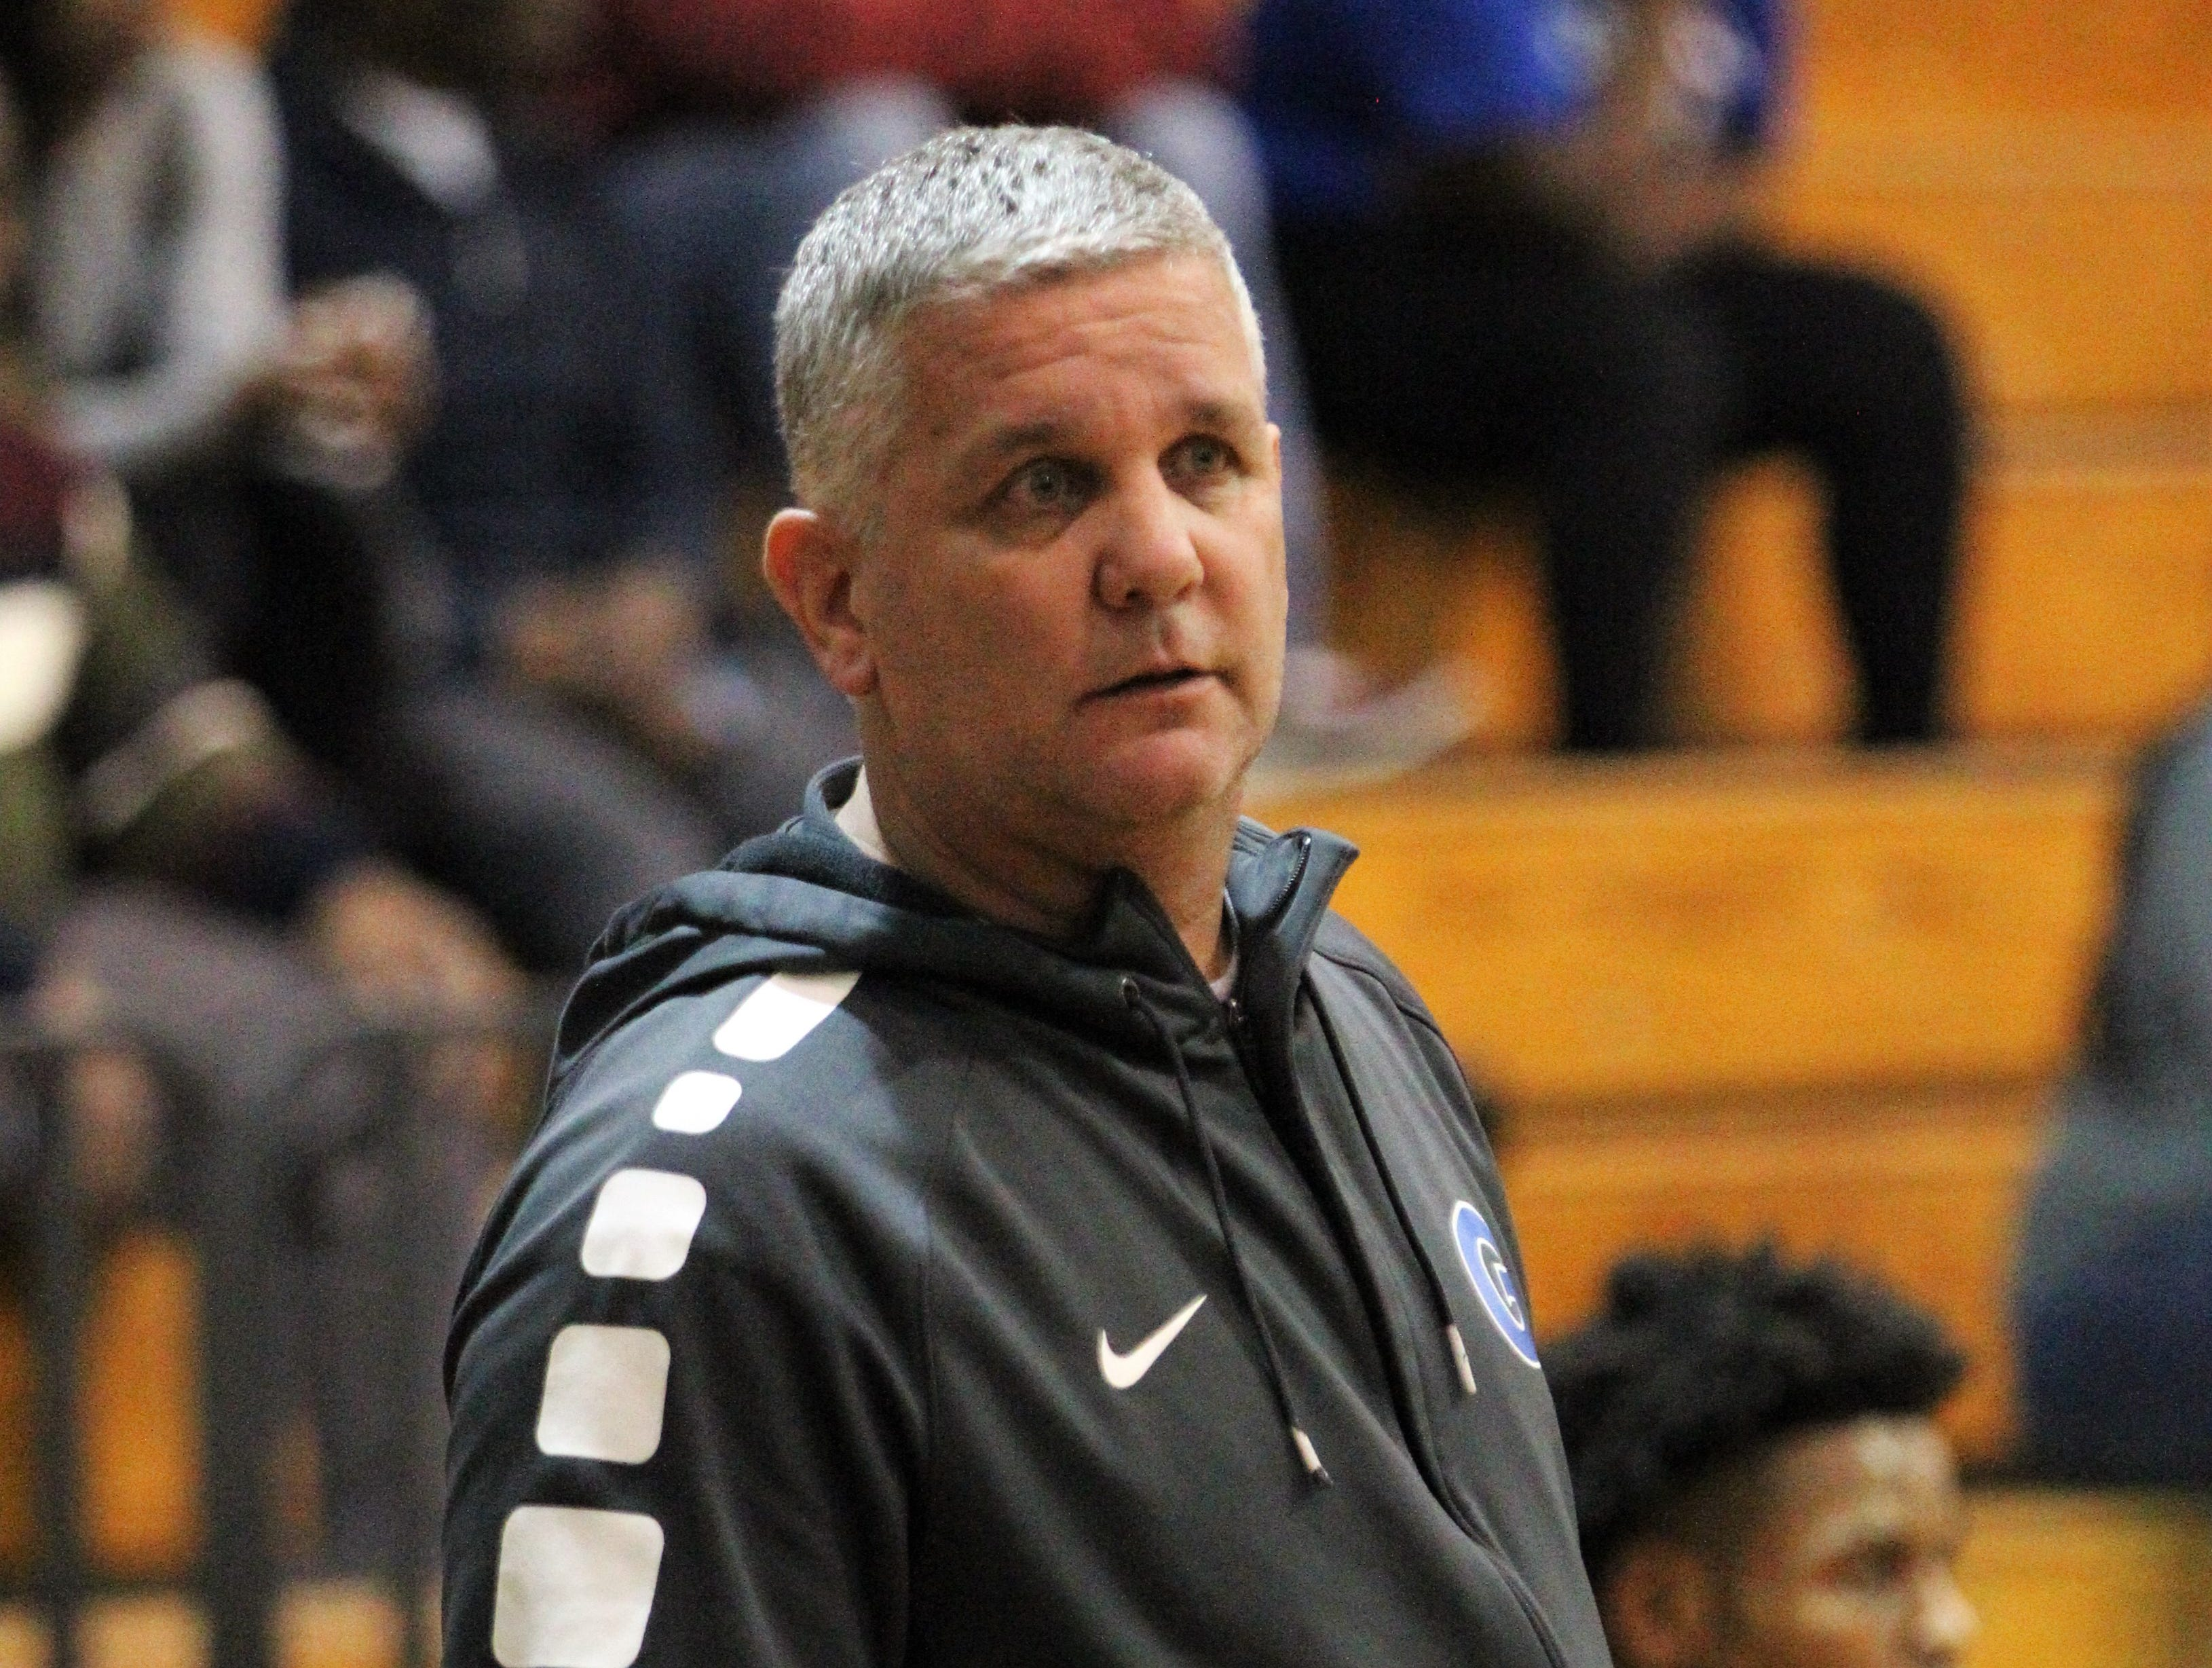 Godby boys basketball coach Andy Colville watches his team as Rickards beat Godby 58-47 during the District 2-6A championship at Chiles on Feb. 15, 2019.